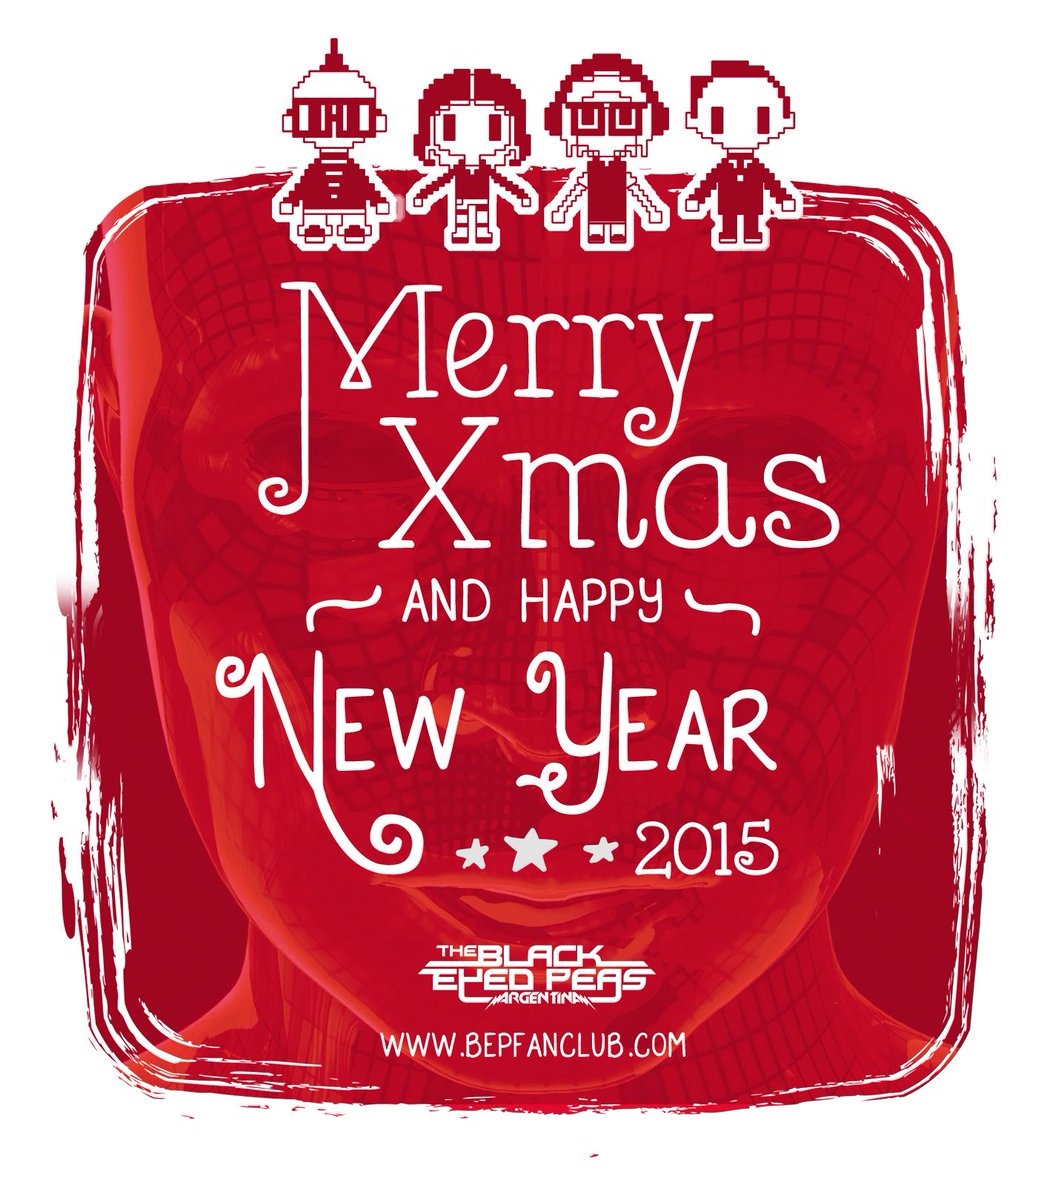 Merry Xmas n Happea New Year for all @thepeabodies and of course @BEP - @iamwill @apldeap @Fergie @TabBep http://t.co/DLTsg8pPwK